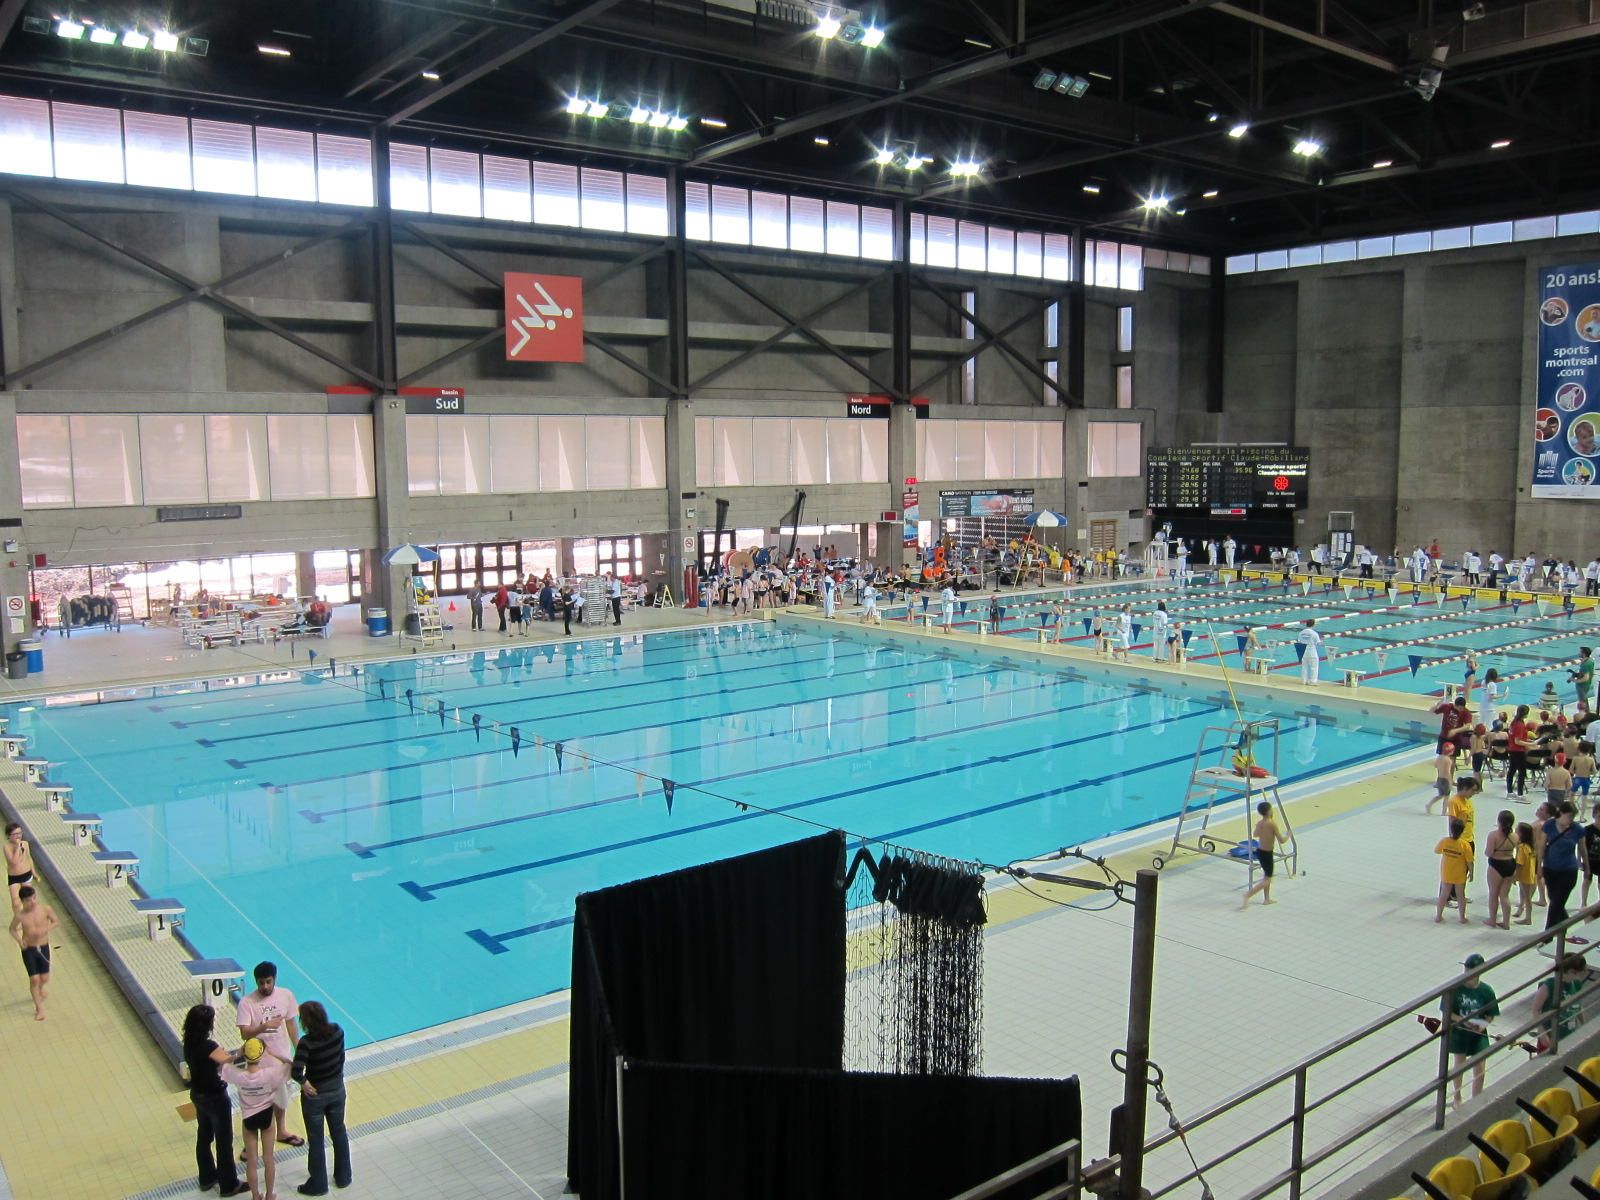 Natation vasion cr6 for Centre claude robillard piscine